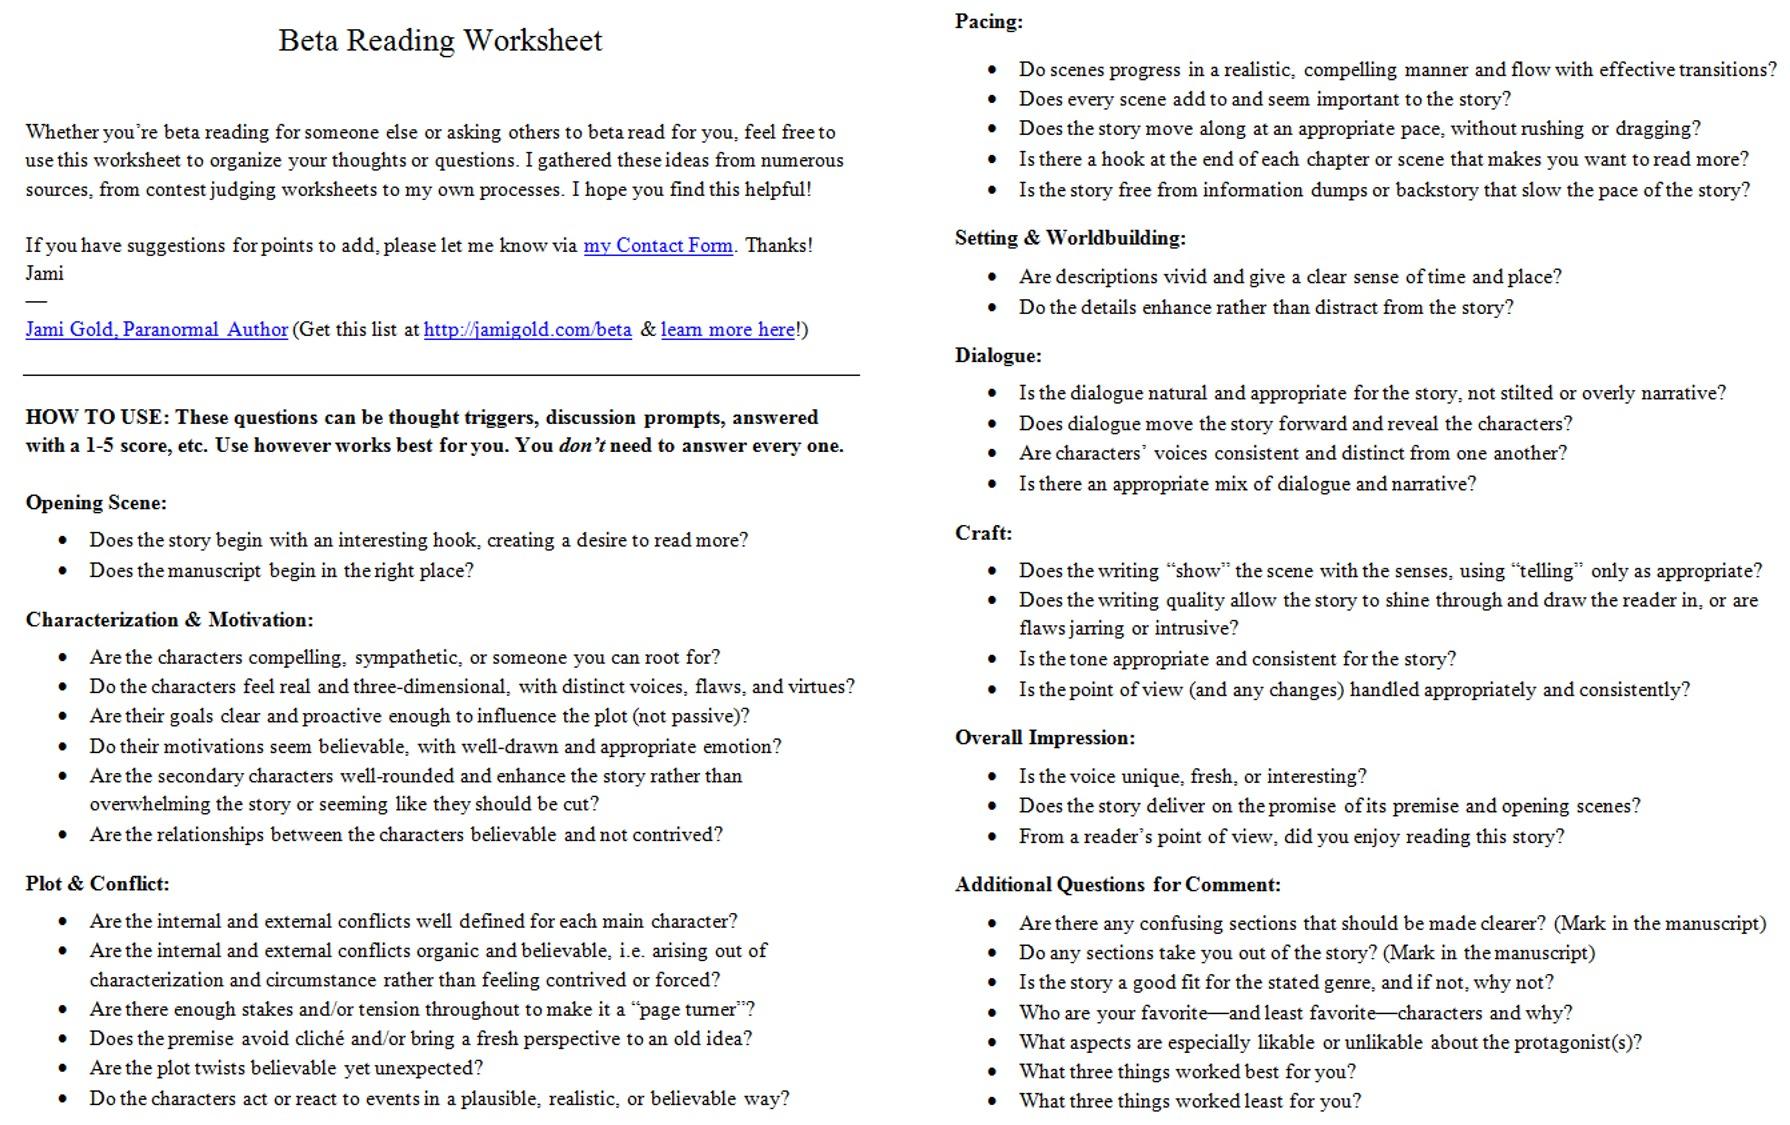 Aldiablosus  Fascinating Worksheets For Writers  Jami Gold Paranormal Author With Remarkable Screen Shot Of The Twopage Beta Reading Worksheet With Beautiful New Years Worksheet Also Word Problems With Variables Worksheets In Addition Two Digit Times One Digit Multiplication Worksheets And Initial Sounds Worksheet As Well As Addition Math Facts Worksheet Additionally Learning To Write Numbers Worksheets From Jamigoldcom With Aldiablosus  Remarkable Worksheets For Writers  Jami Gold Paranormal Author With Beautiful Screen Shot Of The Twopage Beta Reading Worksheet And Fascinating New Years Worksheet Also Word Problems With Variables Worksheets In Addition Two Digit Times One Digit Multiplication Worksheets From Jamigoldcom